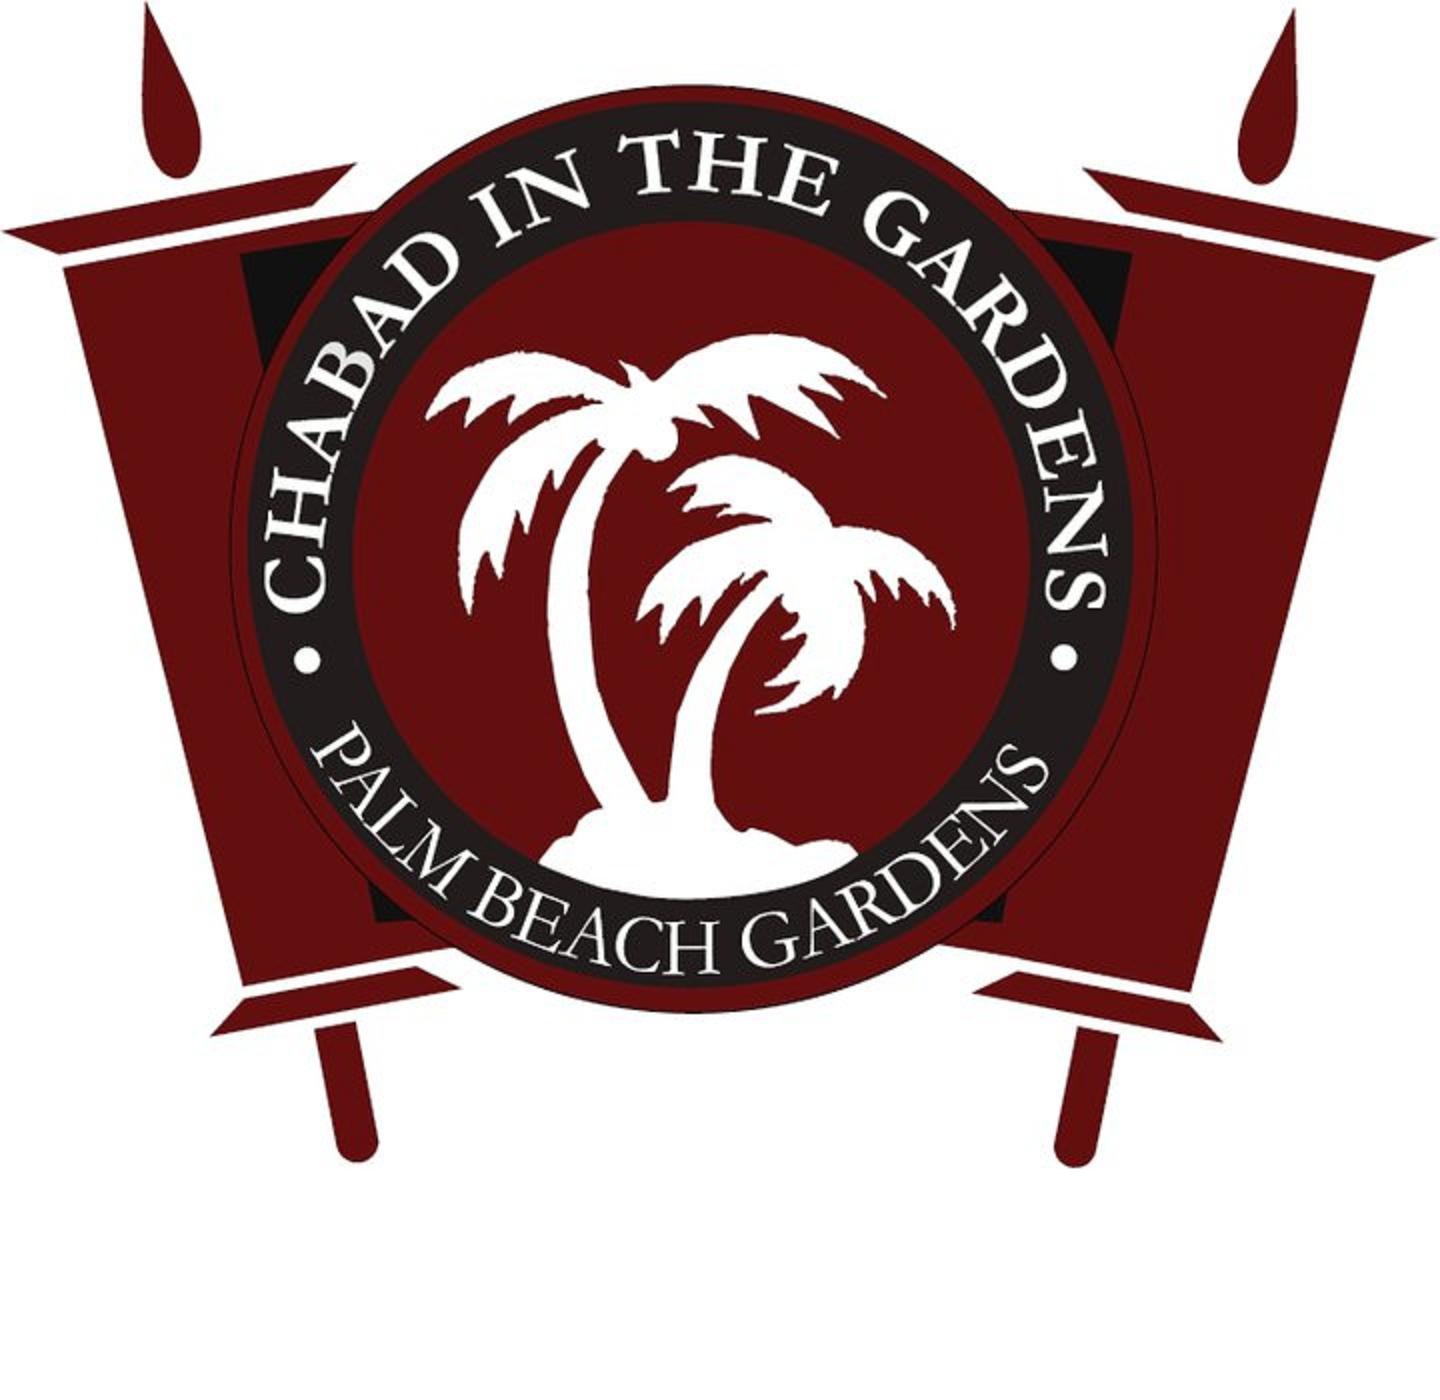 Chabad of Palm Beach Gardens